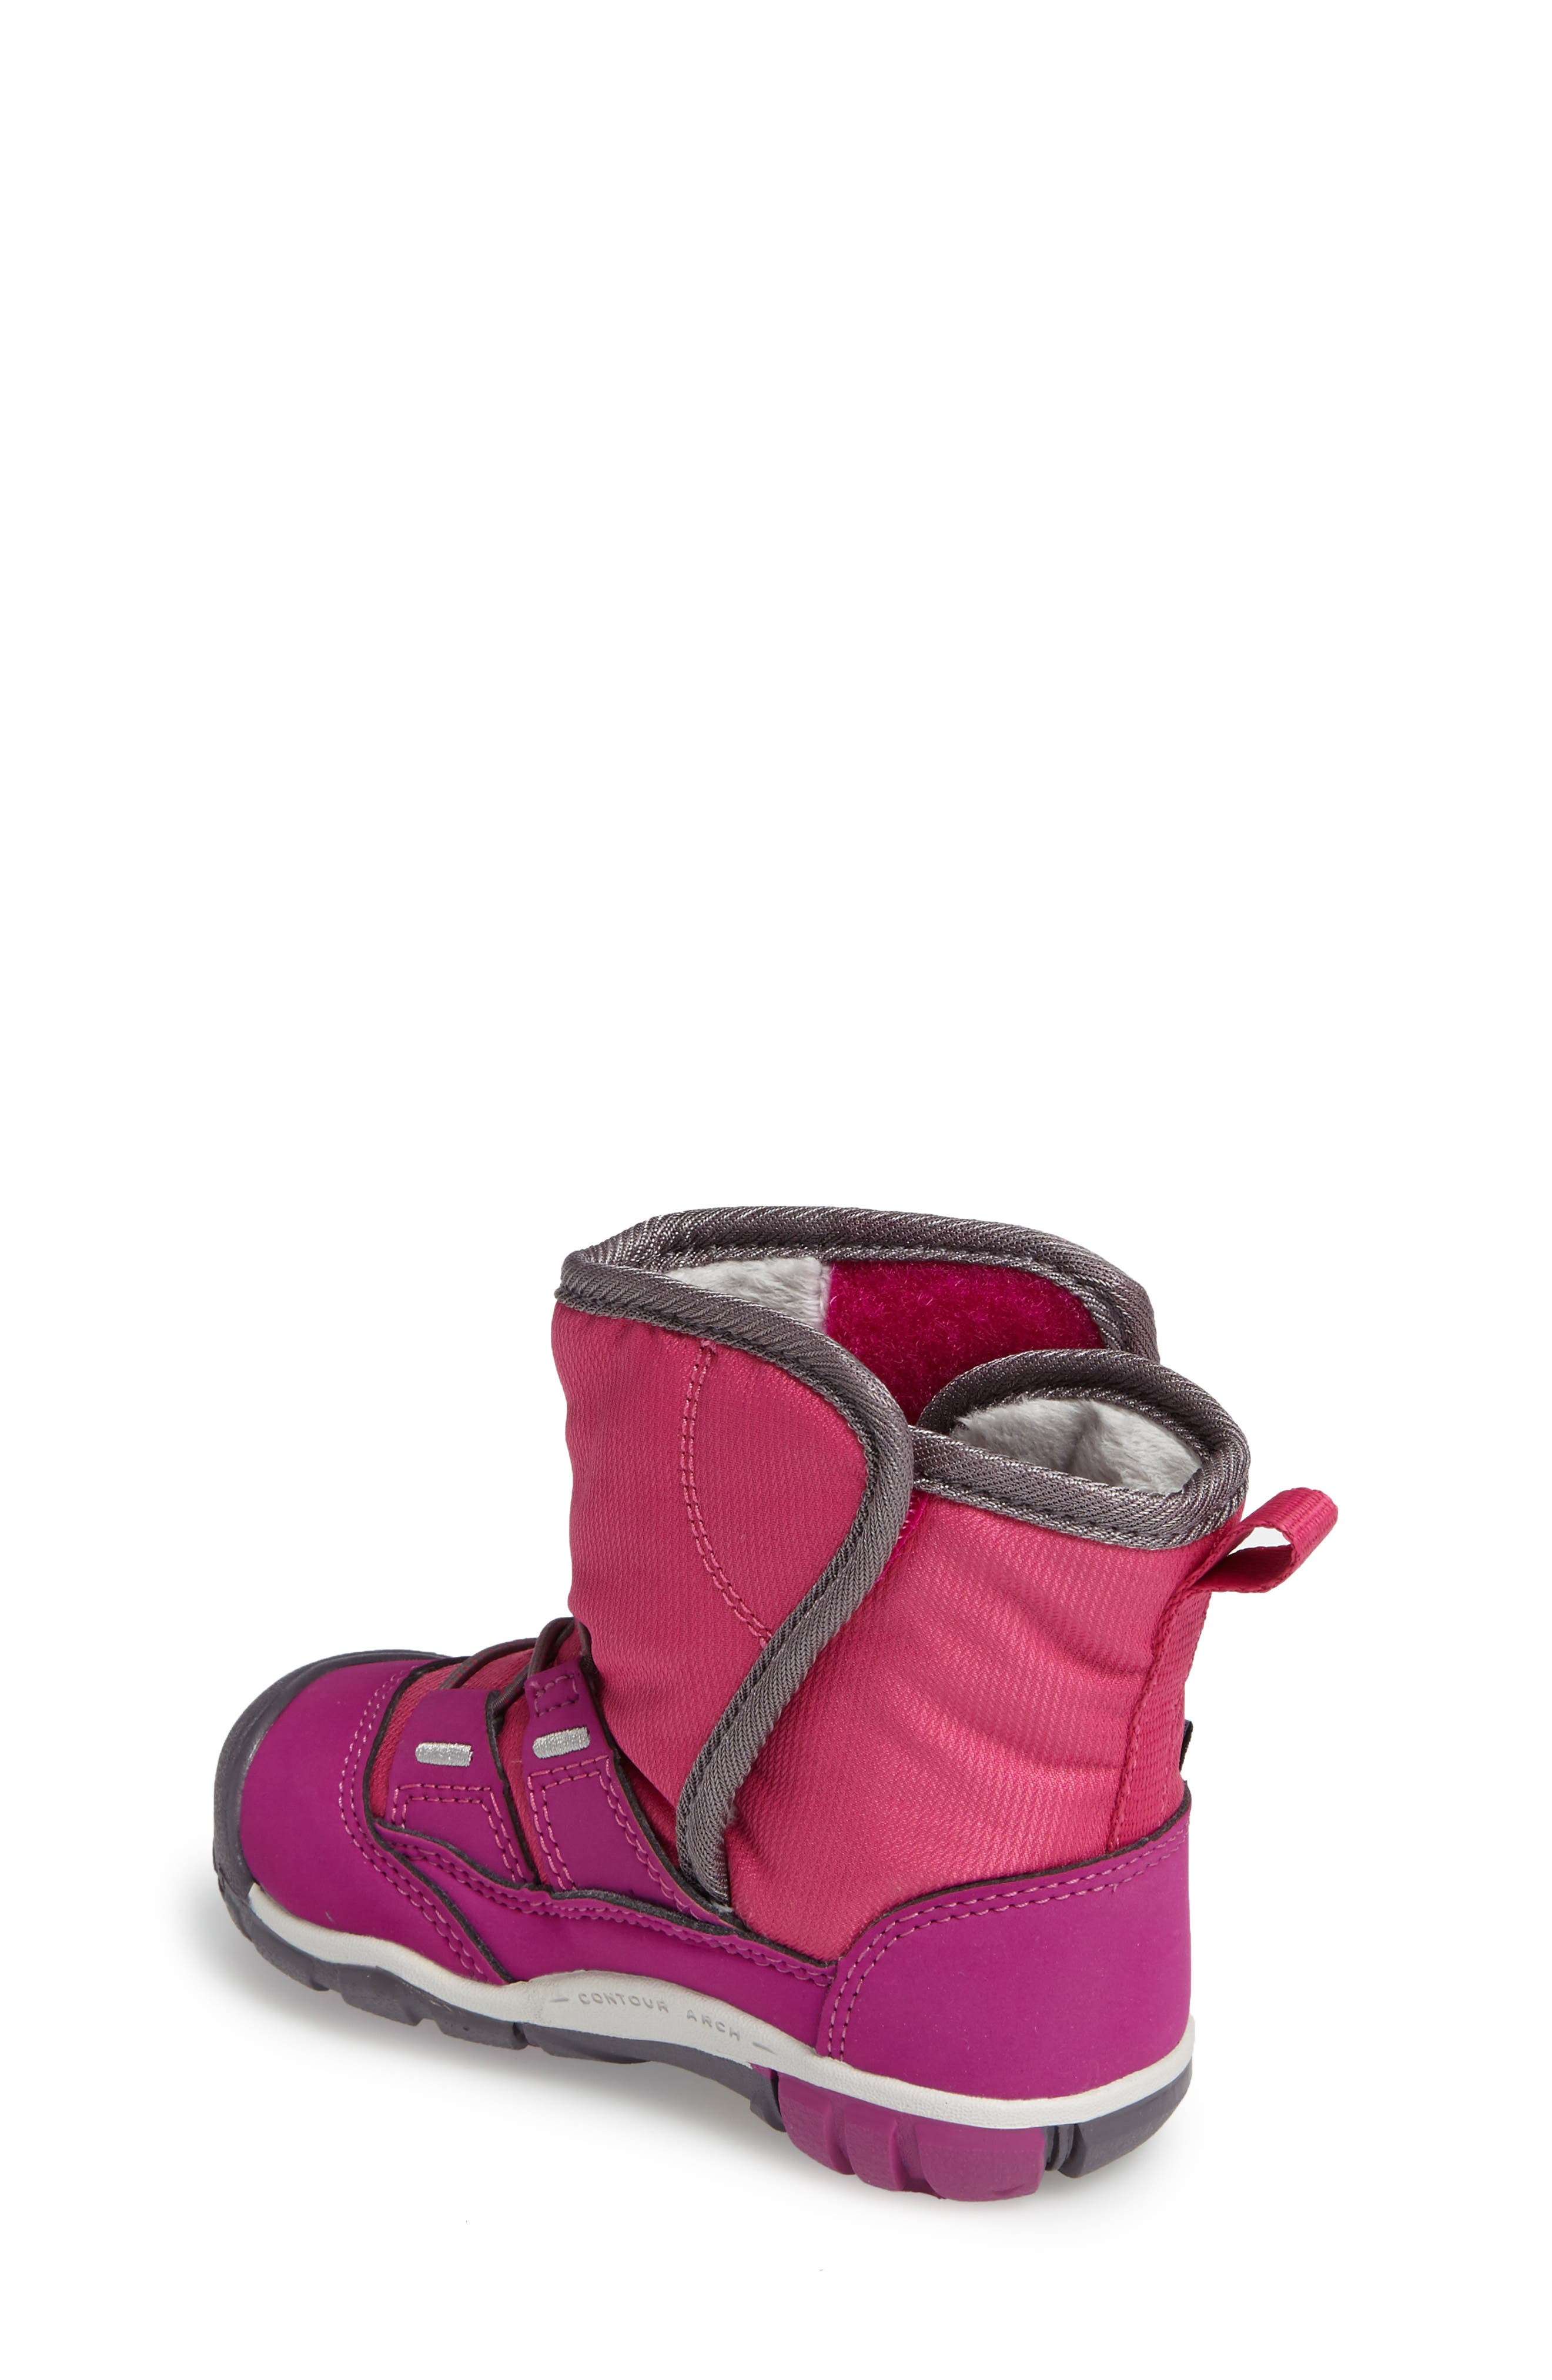 Peek-A-Boot Fleece Lined Boot,                             Alternate thumbnail 9, color,